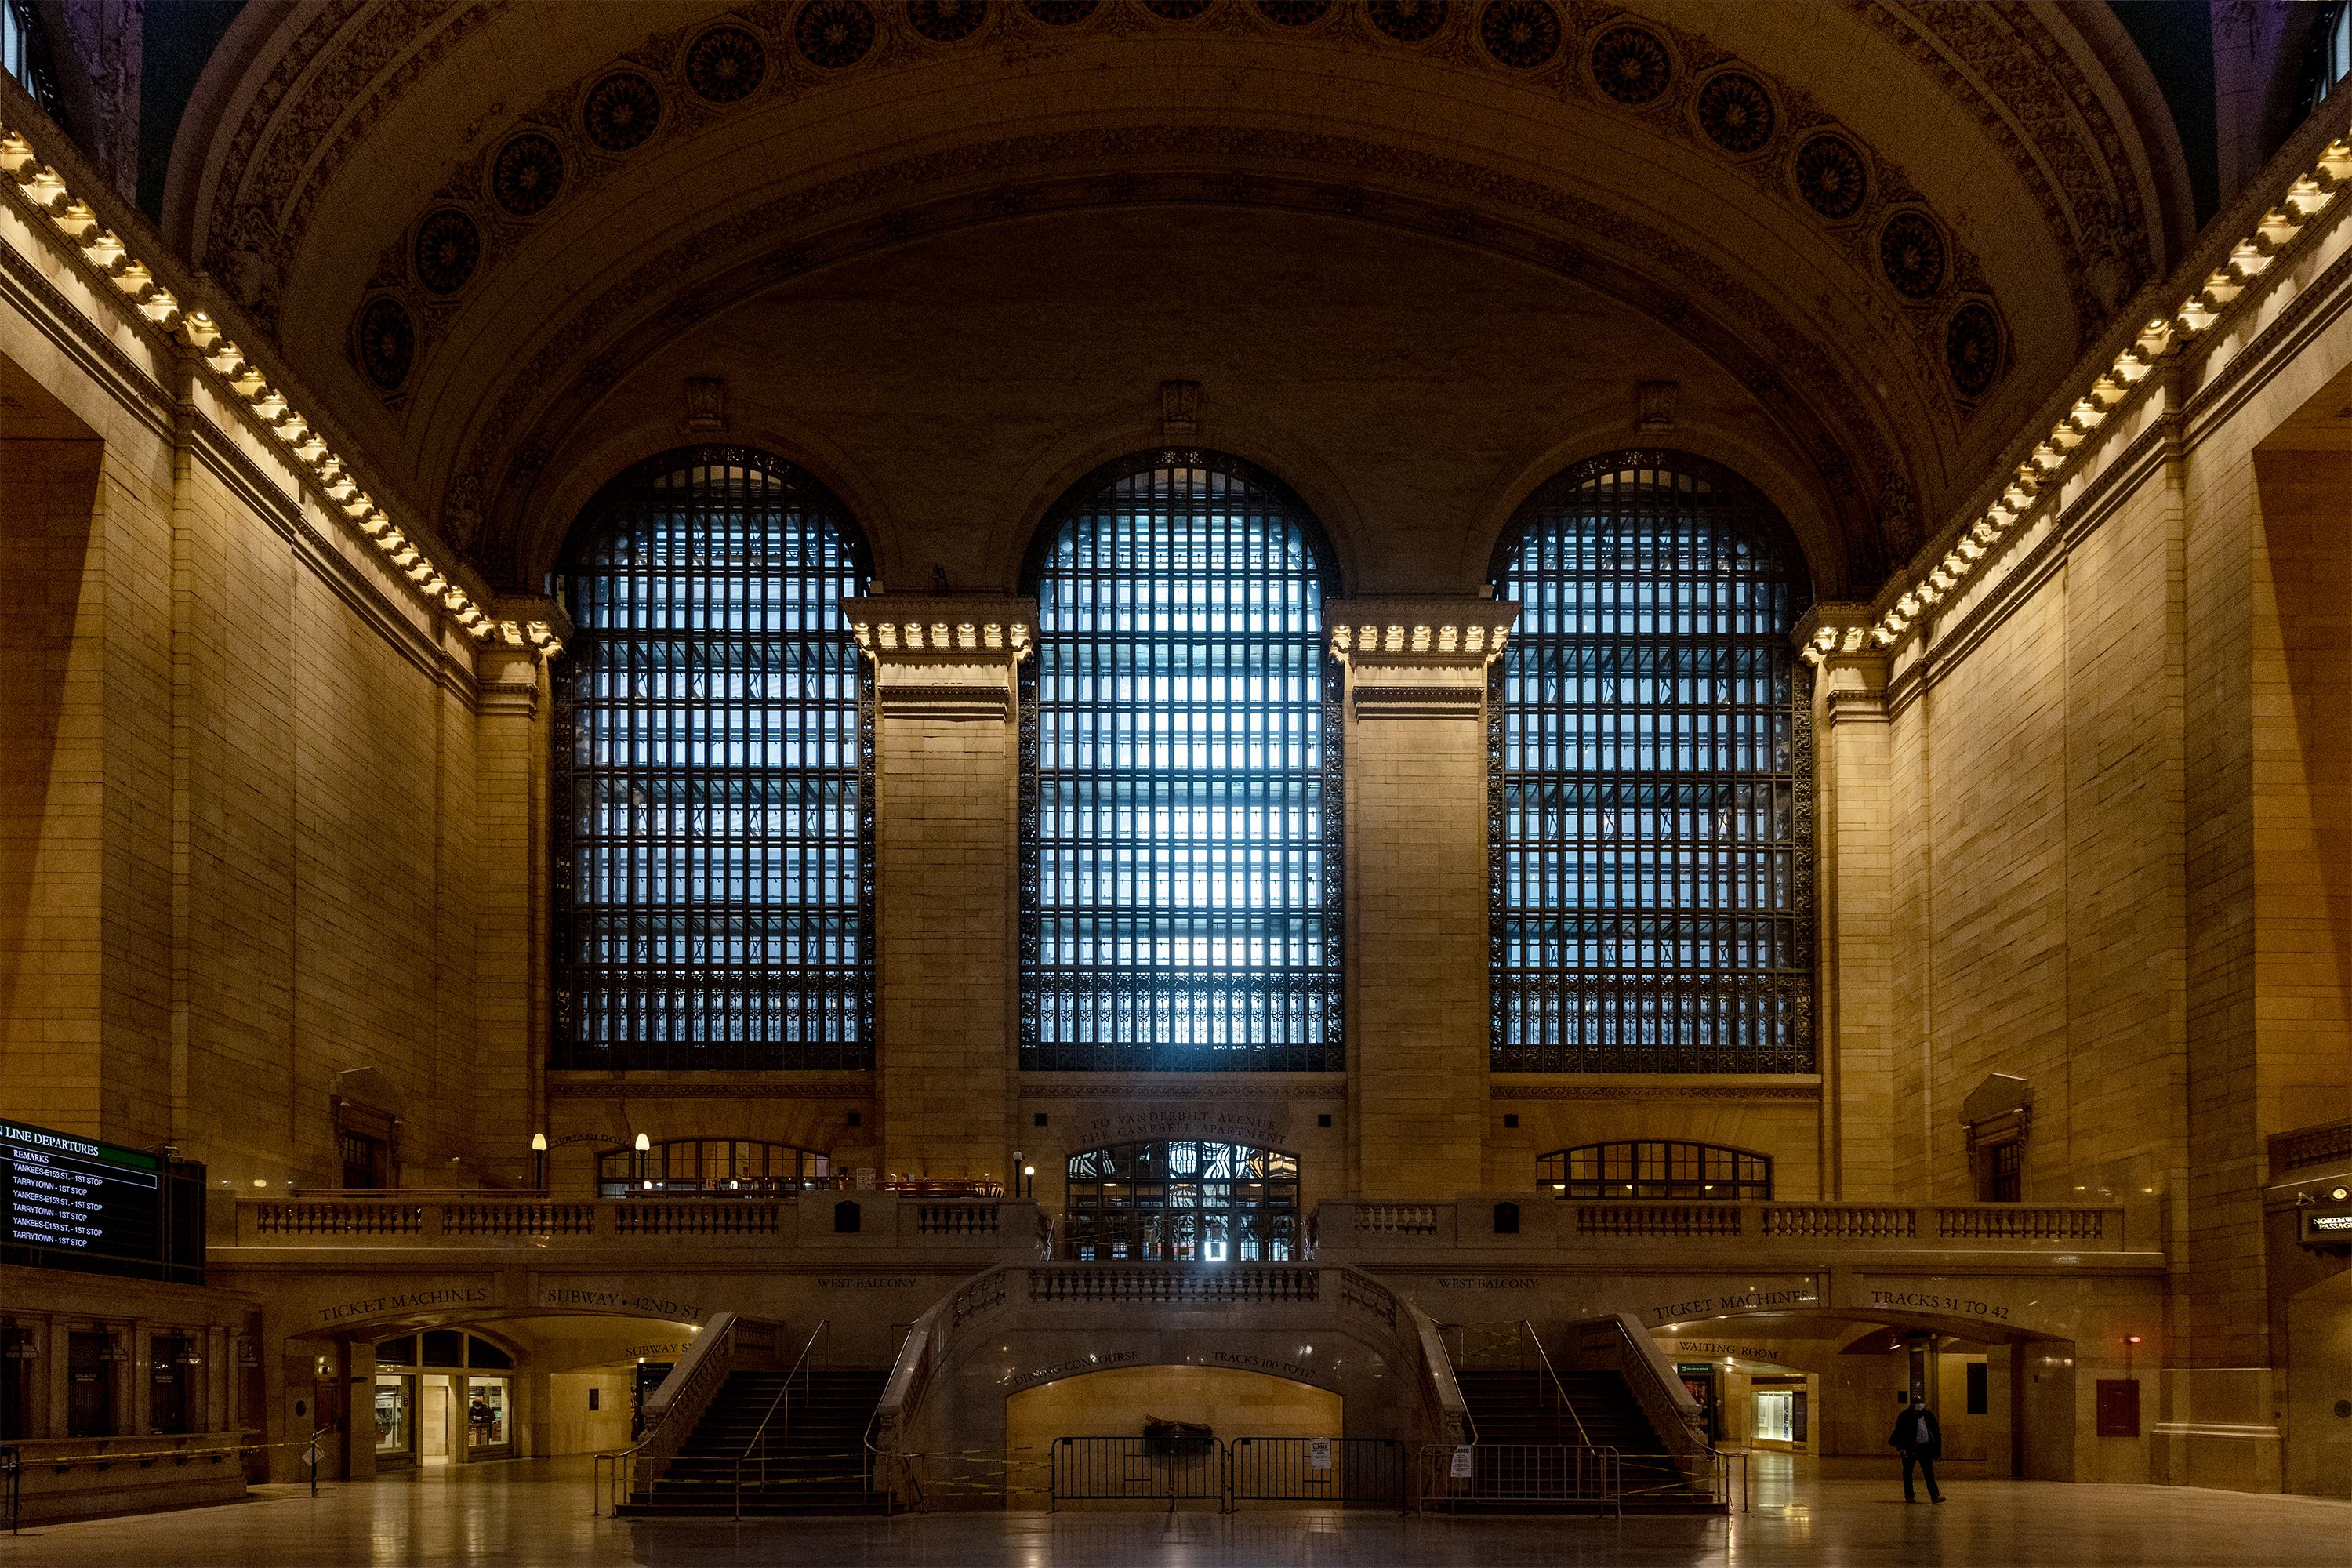 Grand Central Station 3:42pm